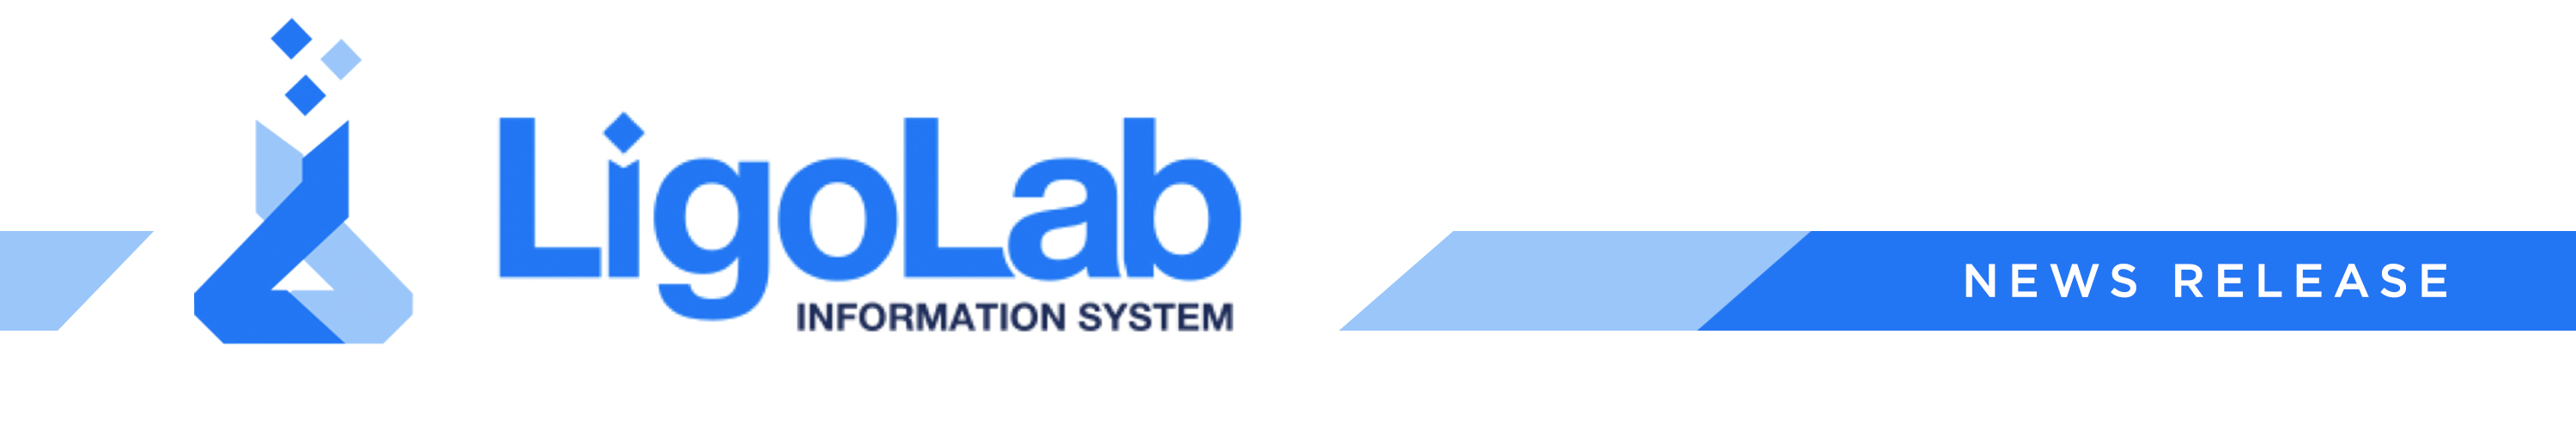 LigoLab is a leading provider of innovative end-to-end healthcare software for pathology laboratories